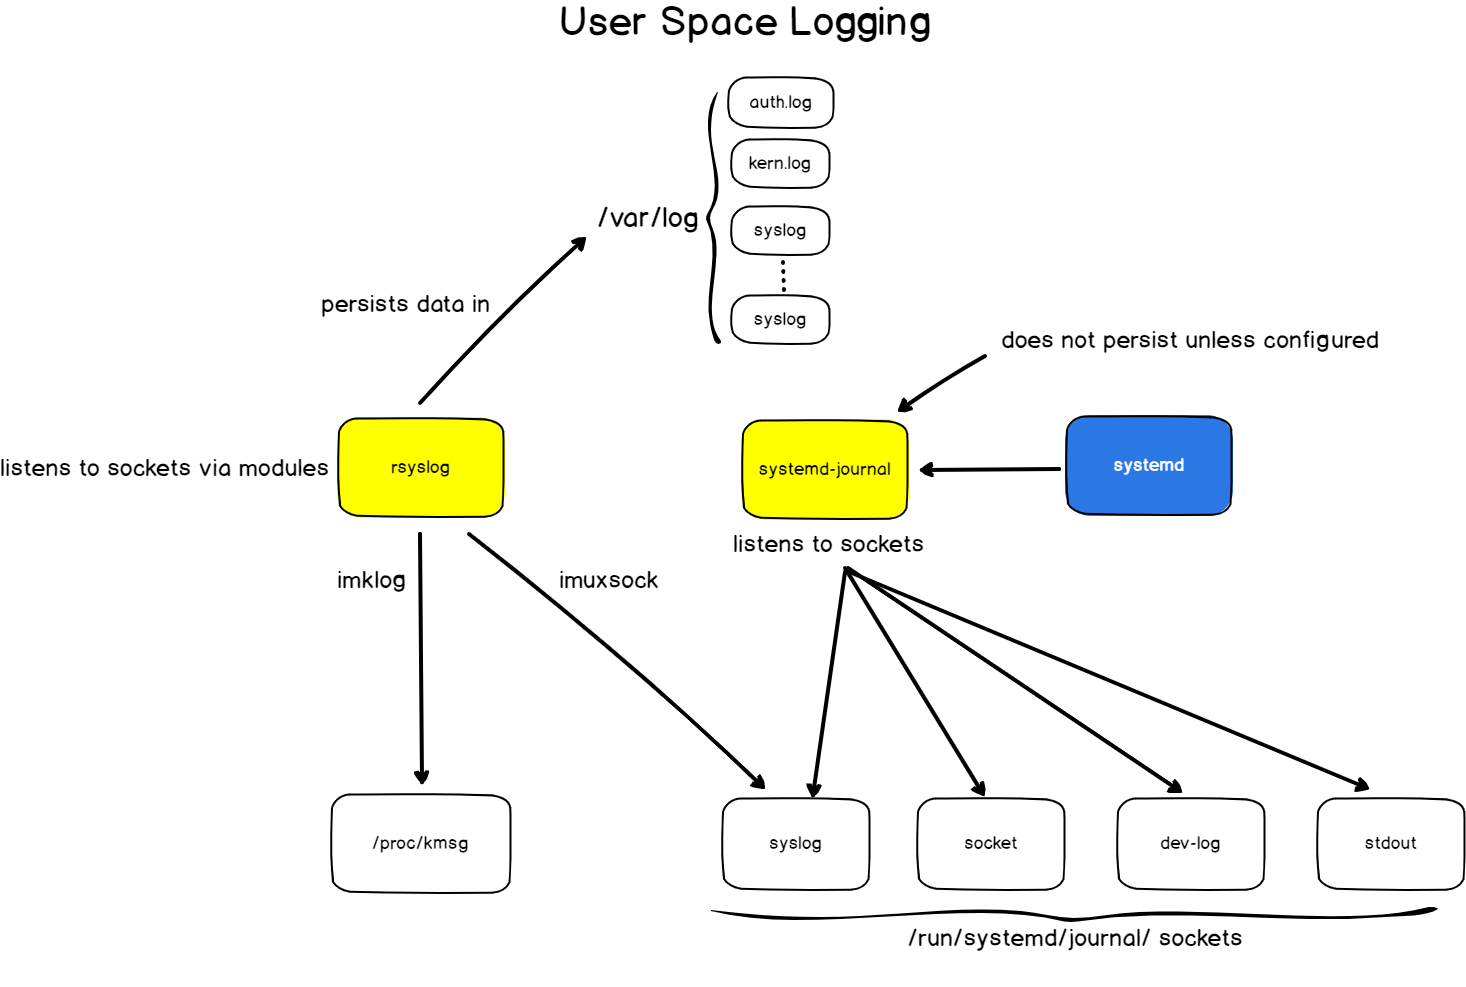 User space logging on Linux